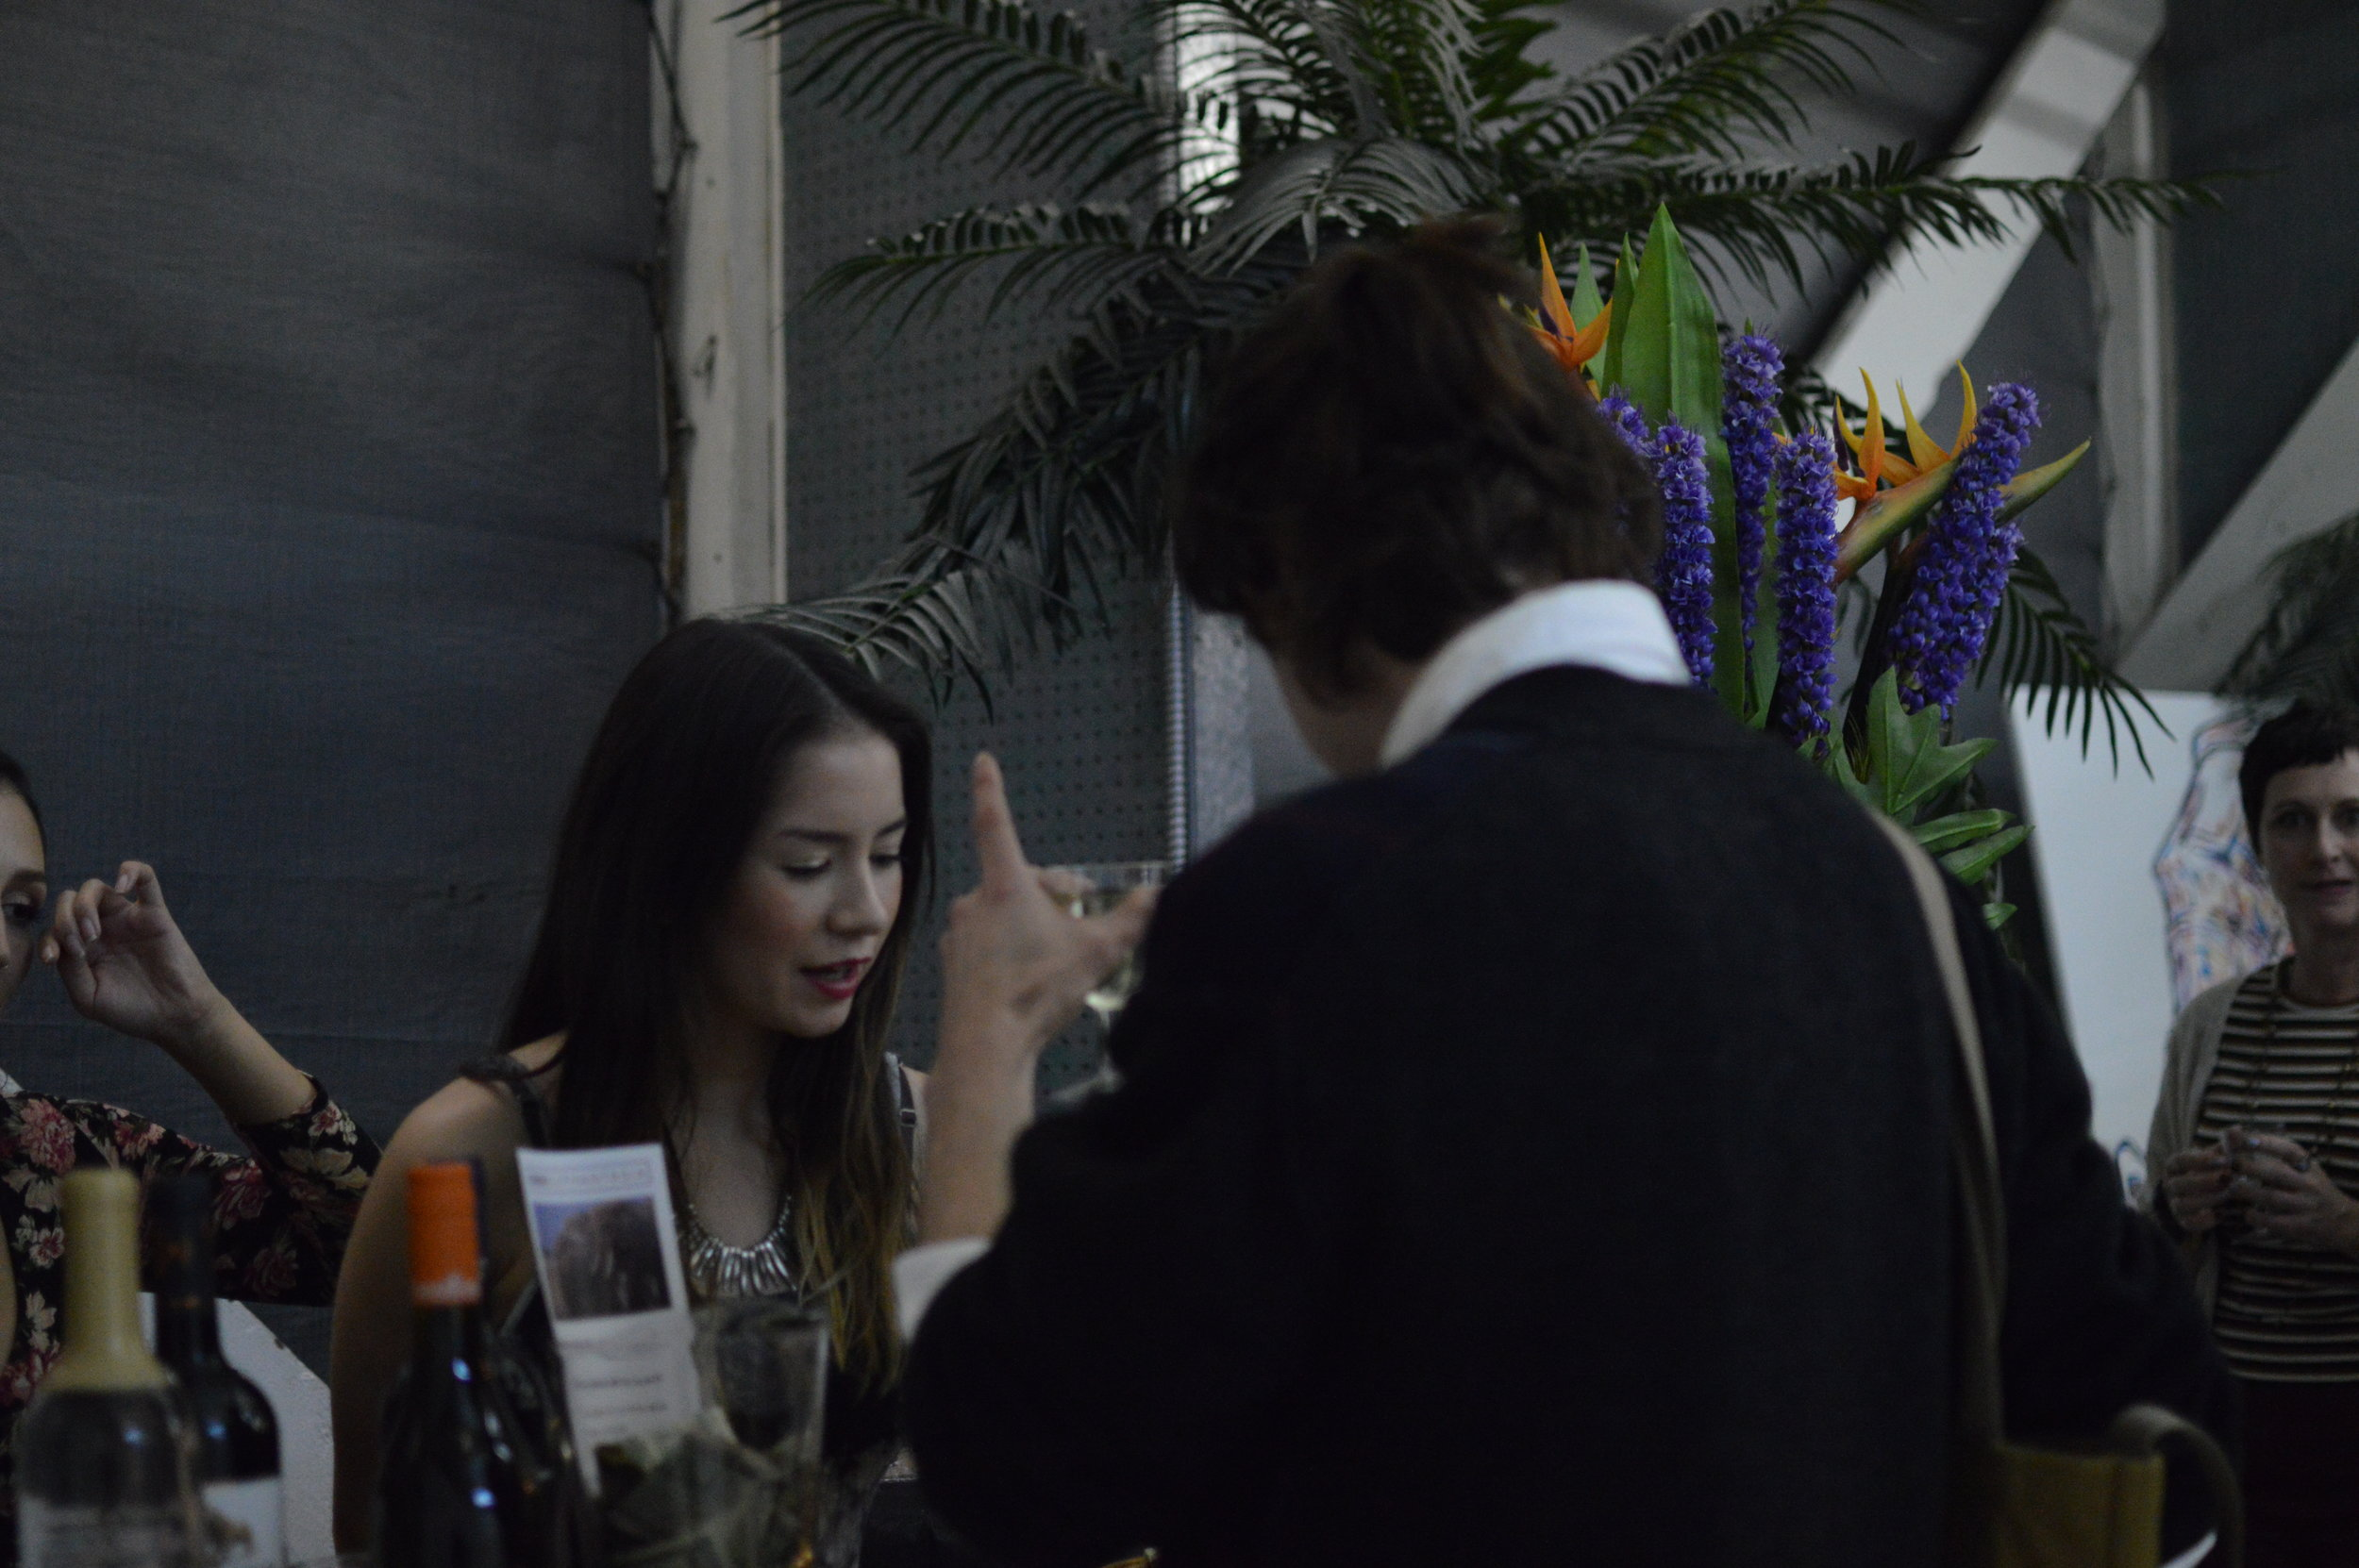 Open bar of organic wine, cocktails and hors d'oeuvres.